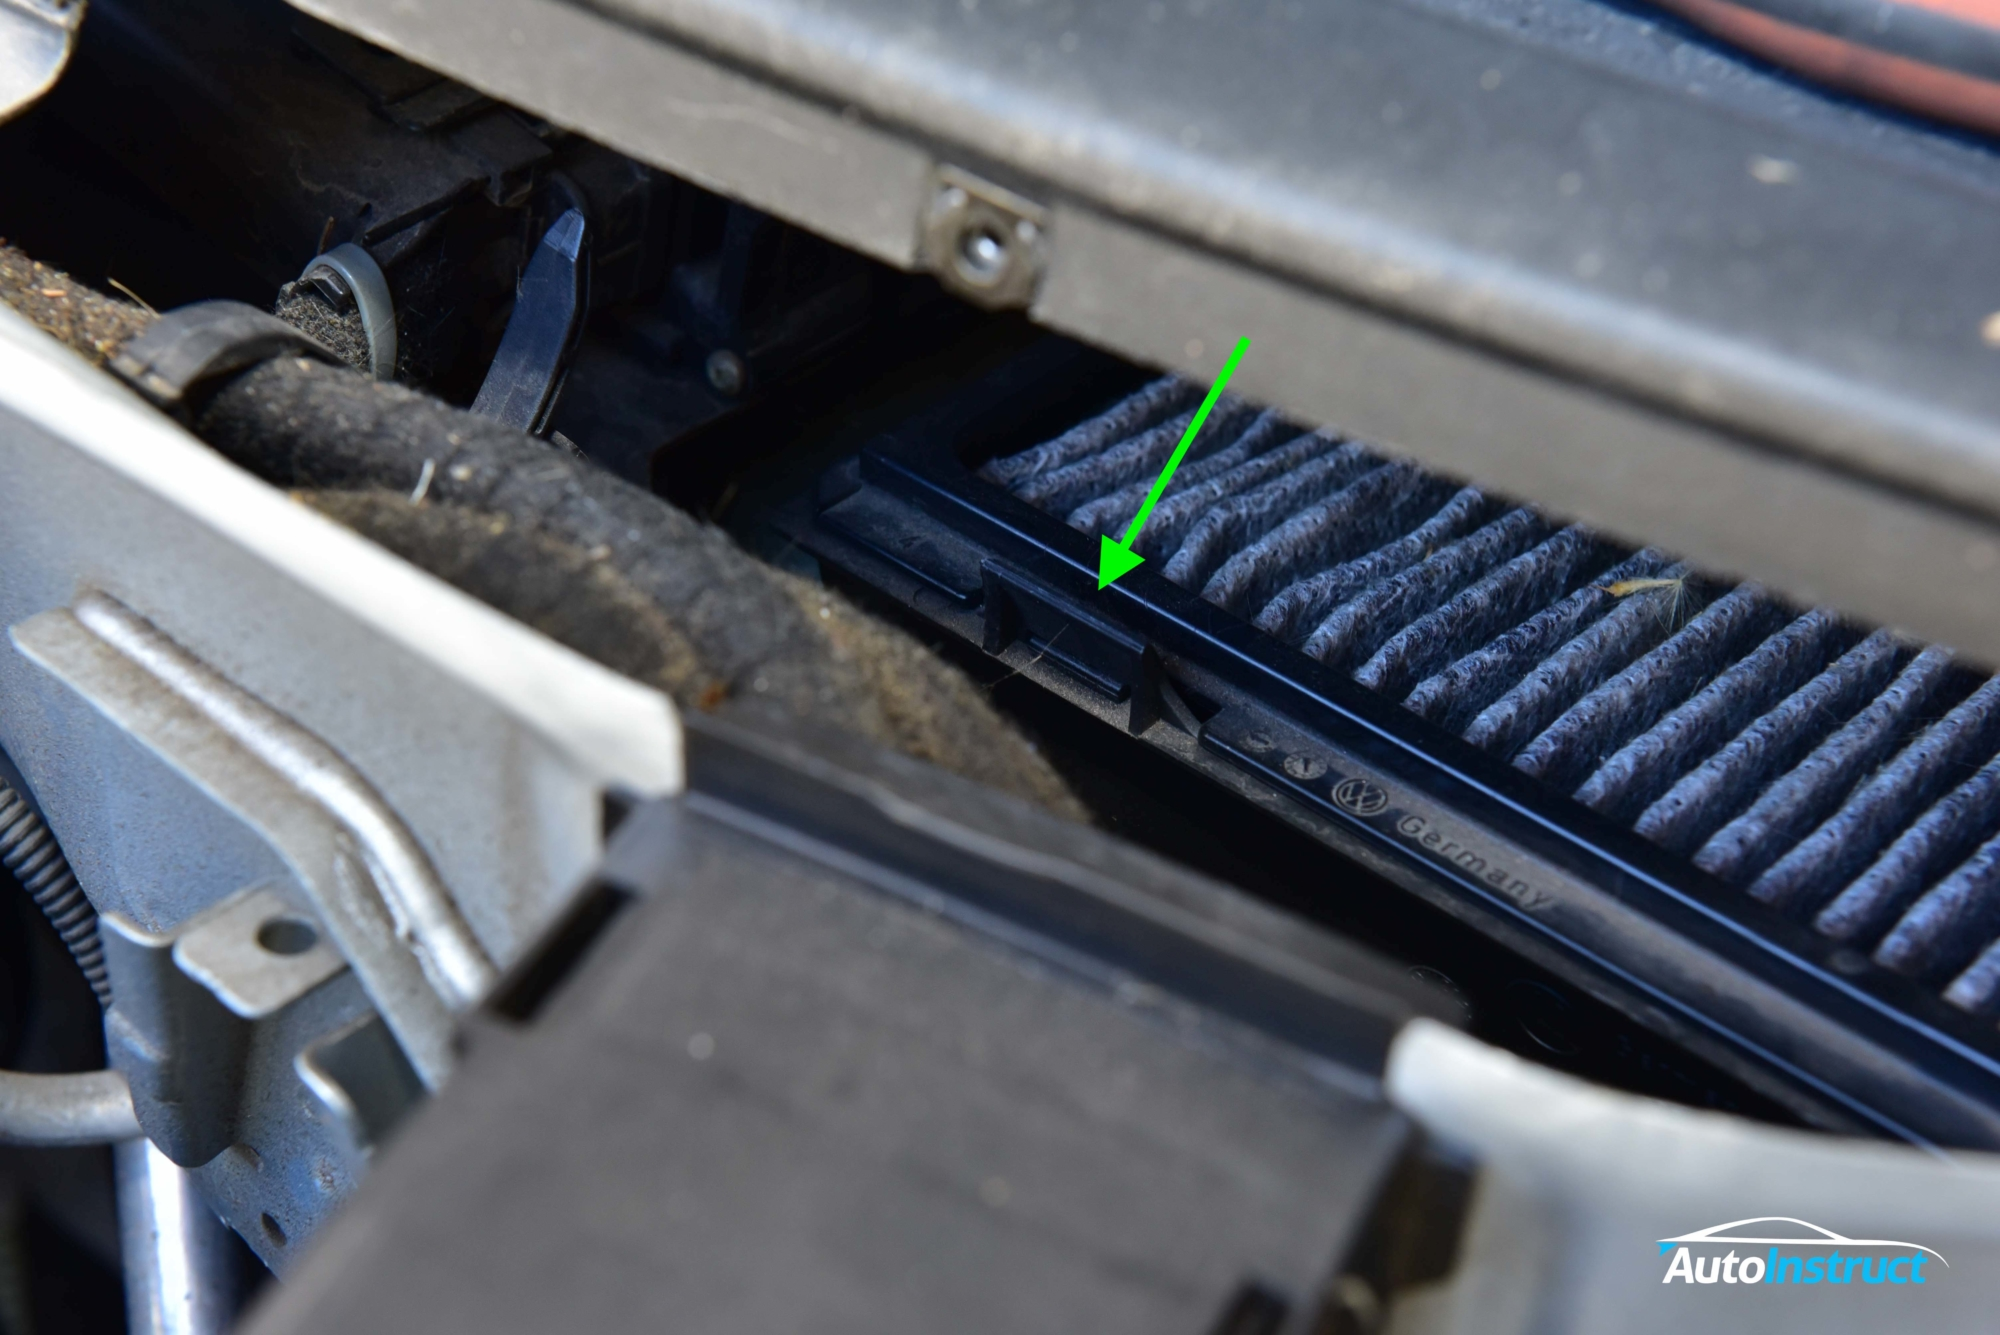 MK4 Golf Cabin Filter Replacement